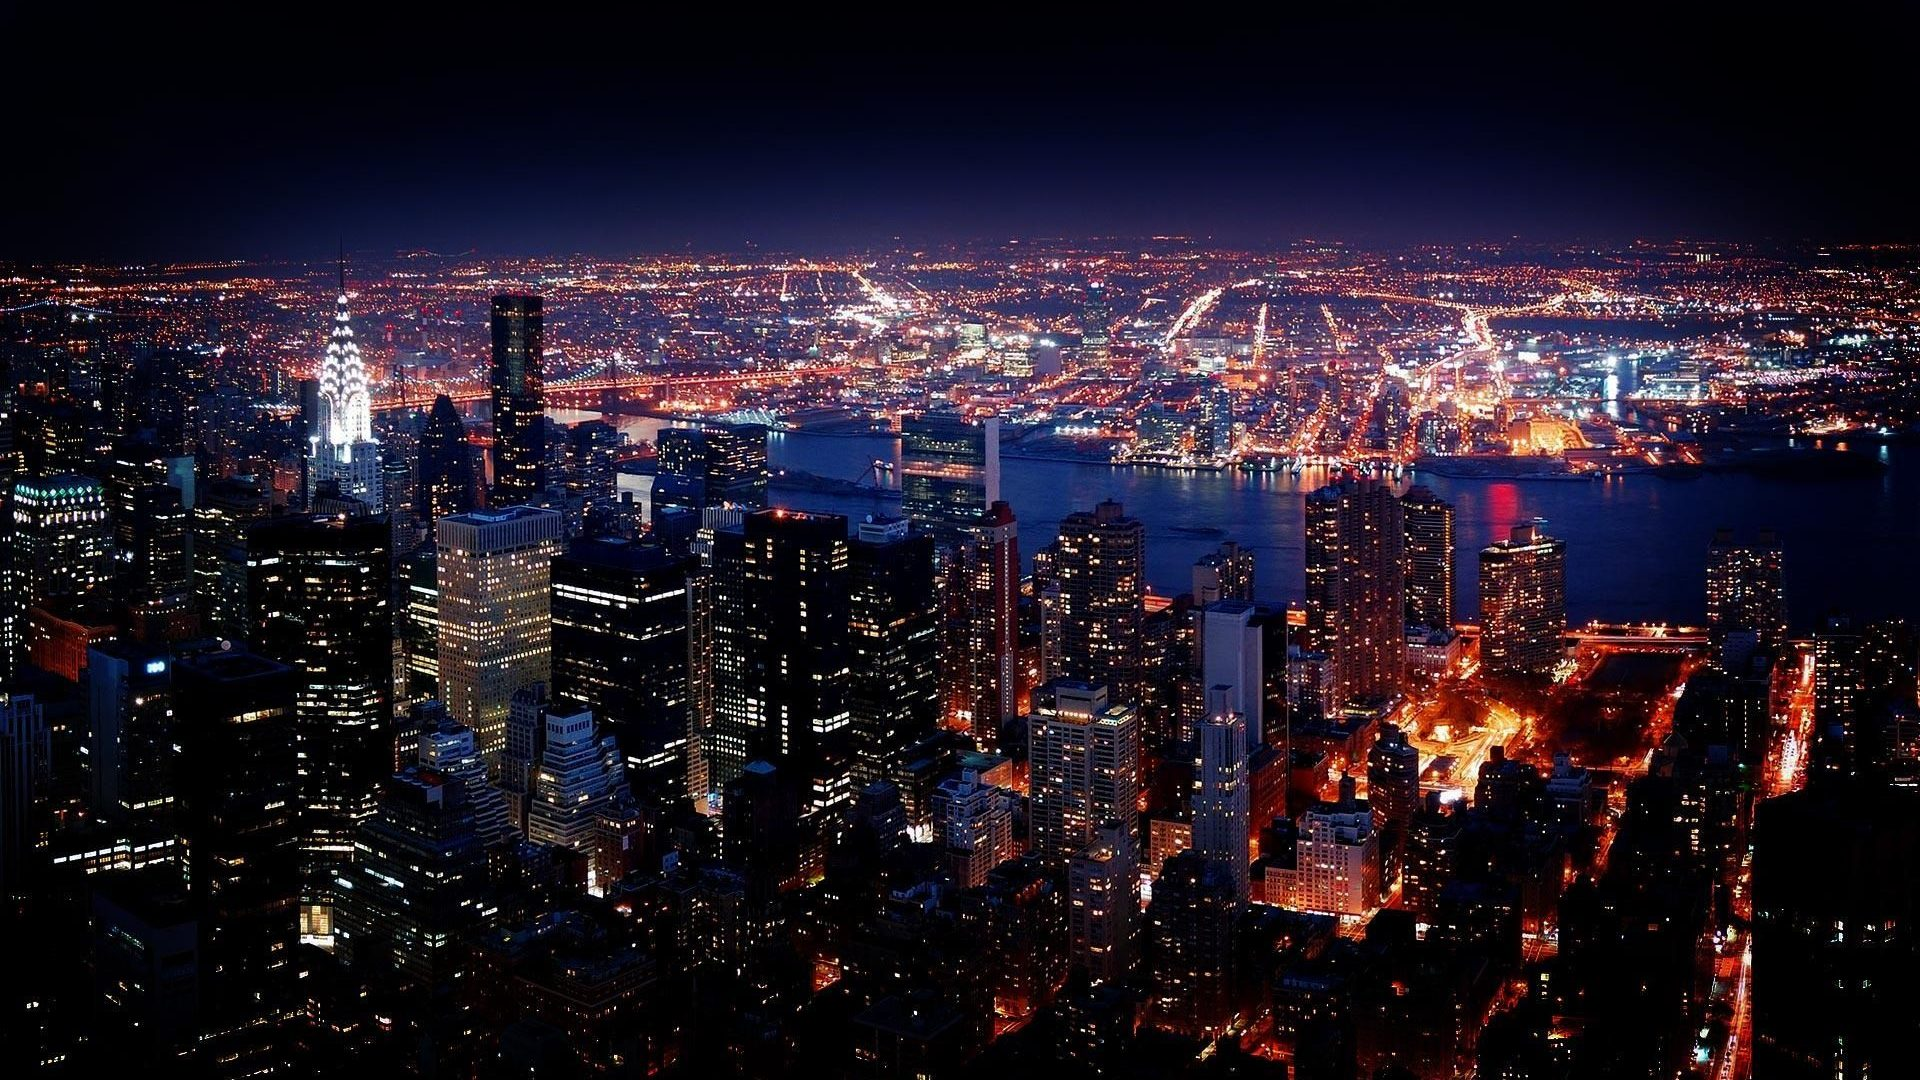 Free Download New York At Night Wallpapers Hd 1920x1080 Oni